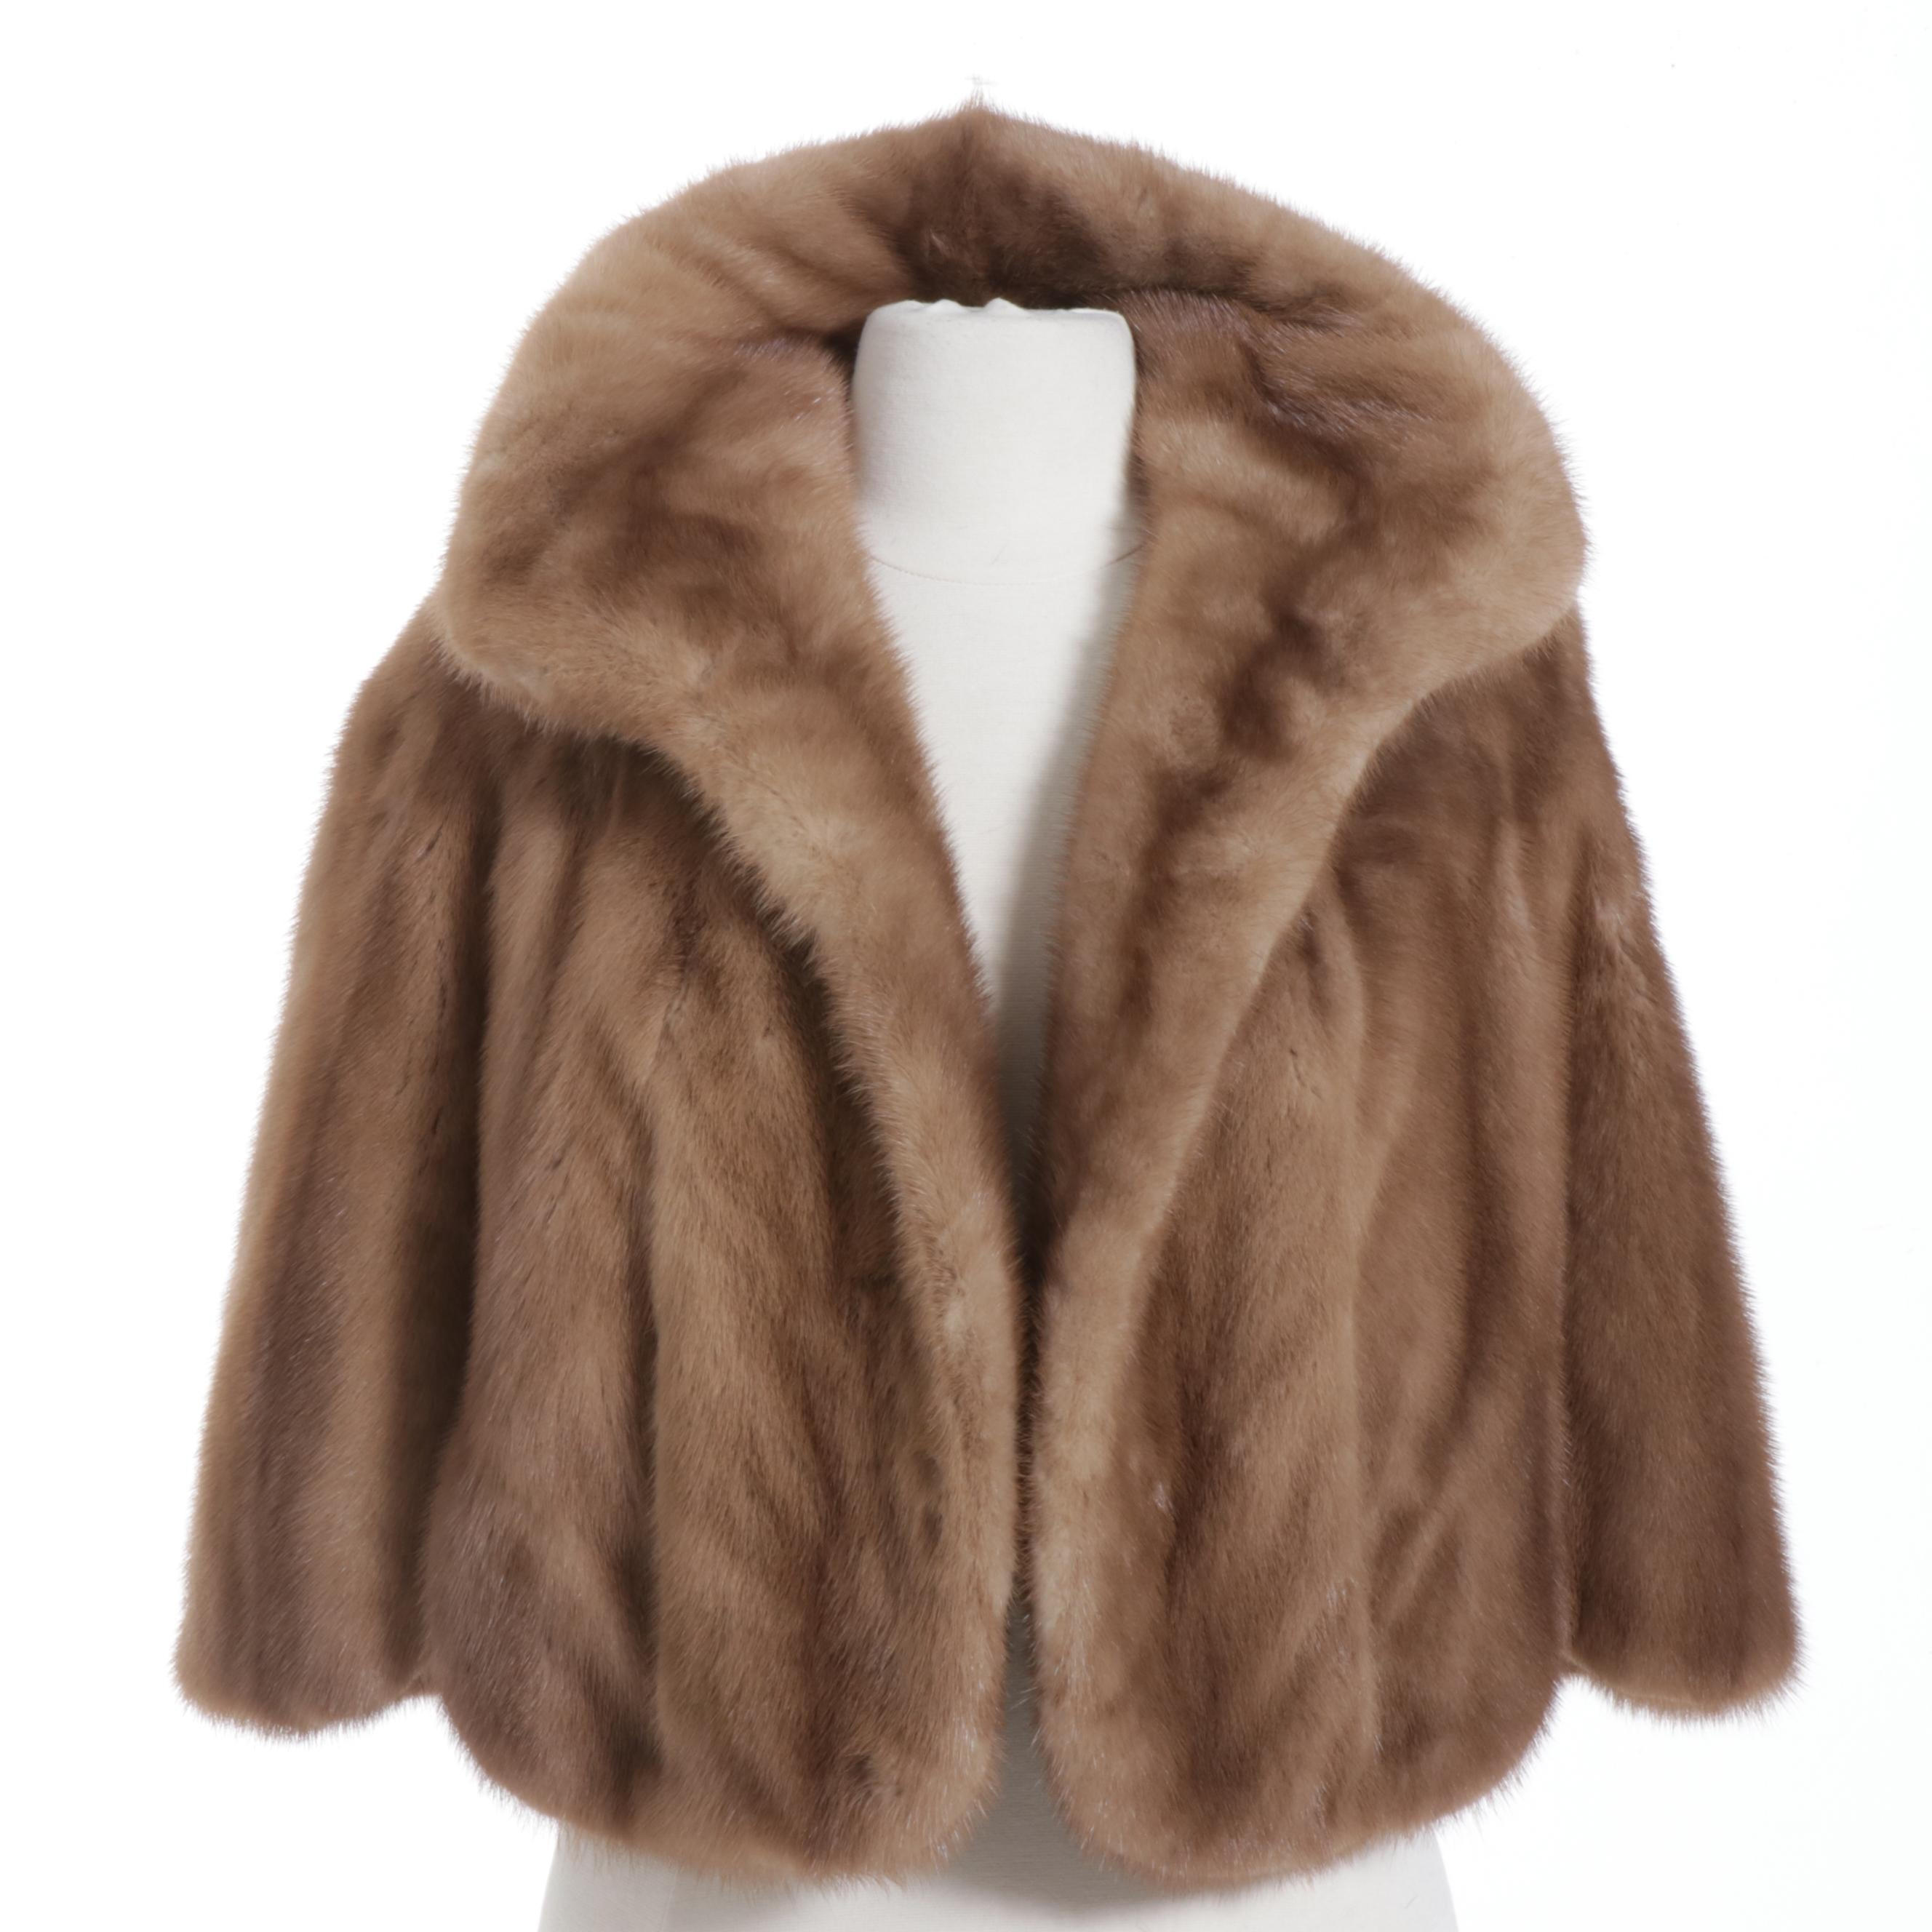 Autumn Haze Mink Fur Stole, Mid-20th Century